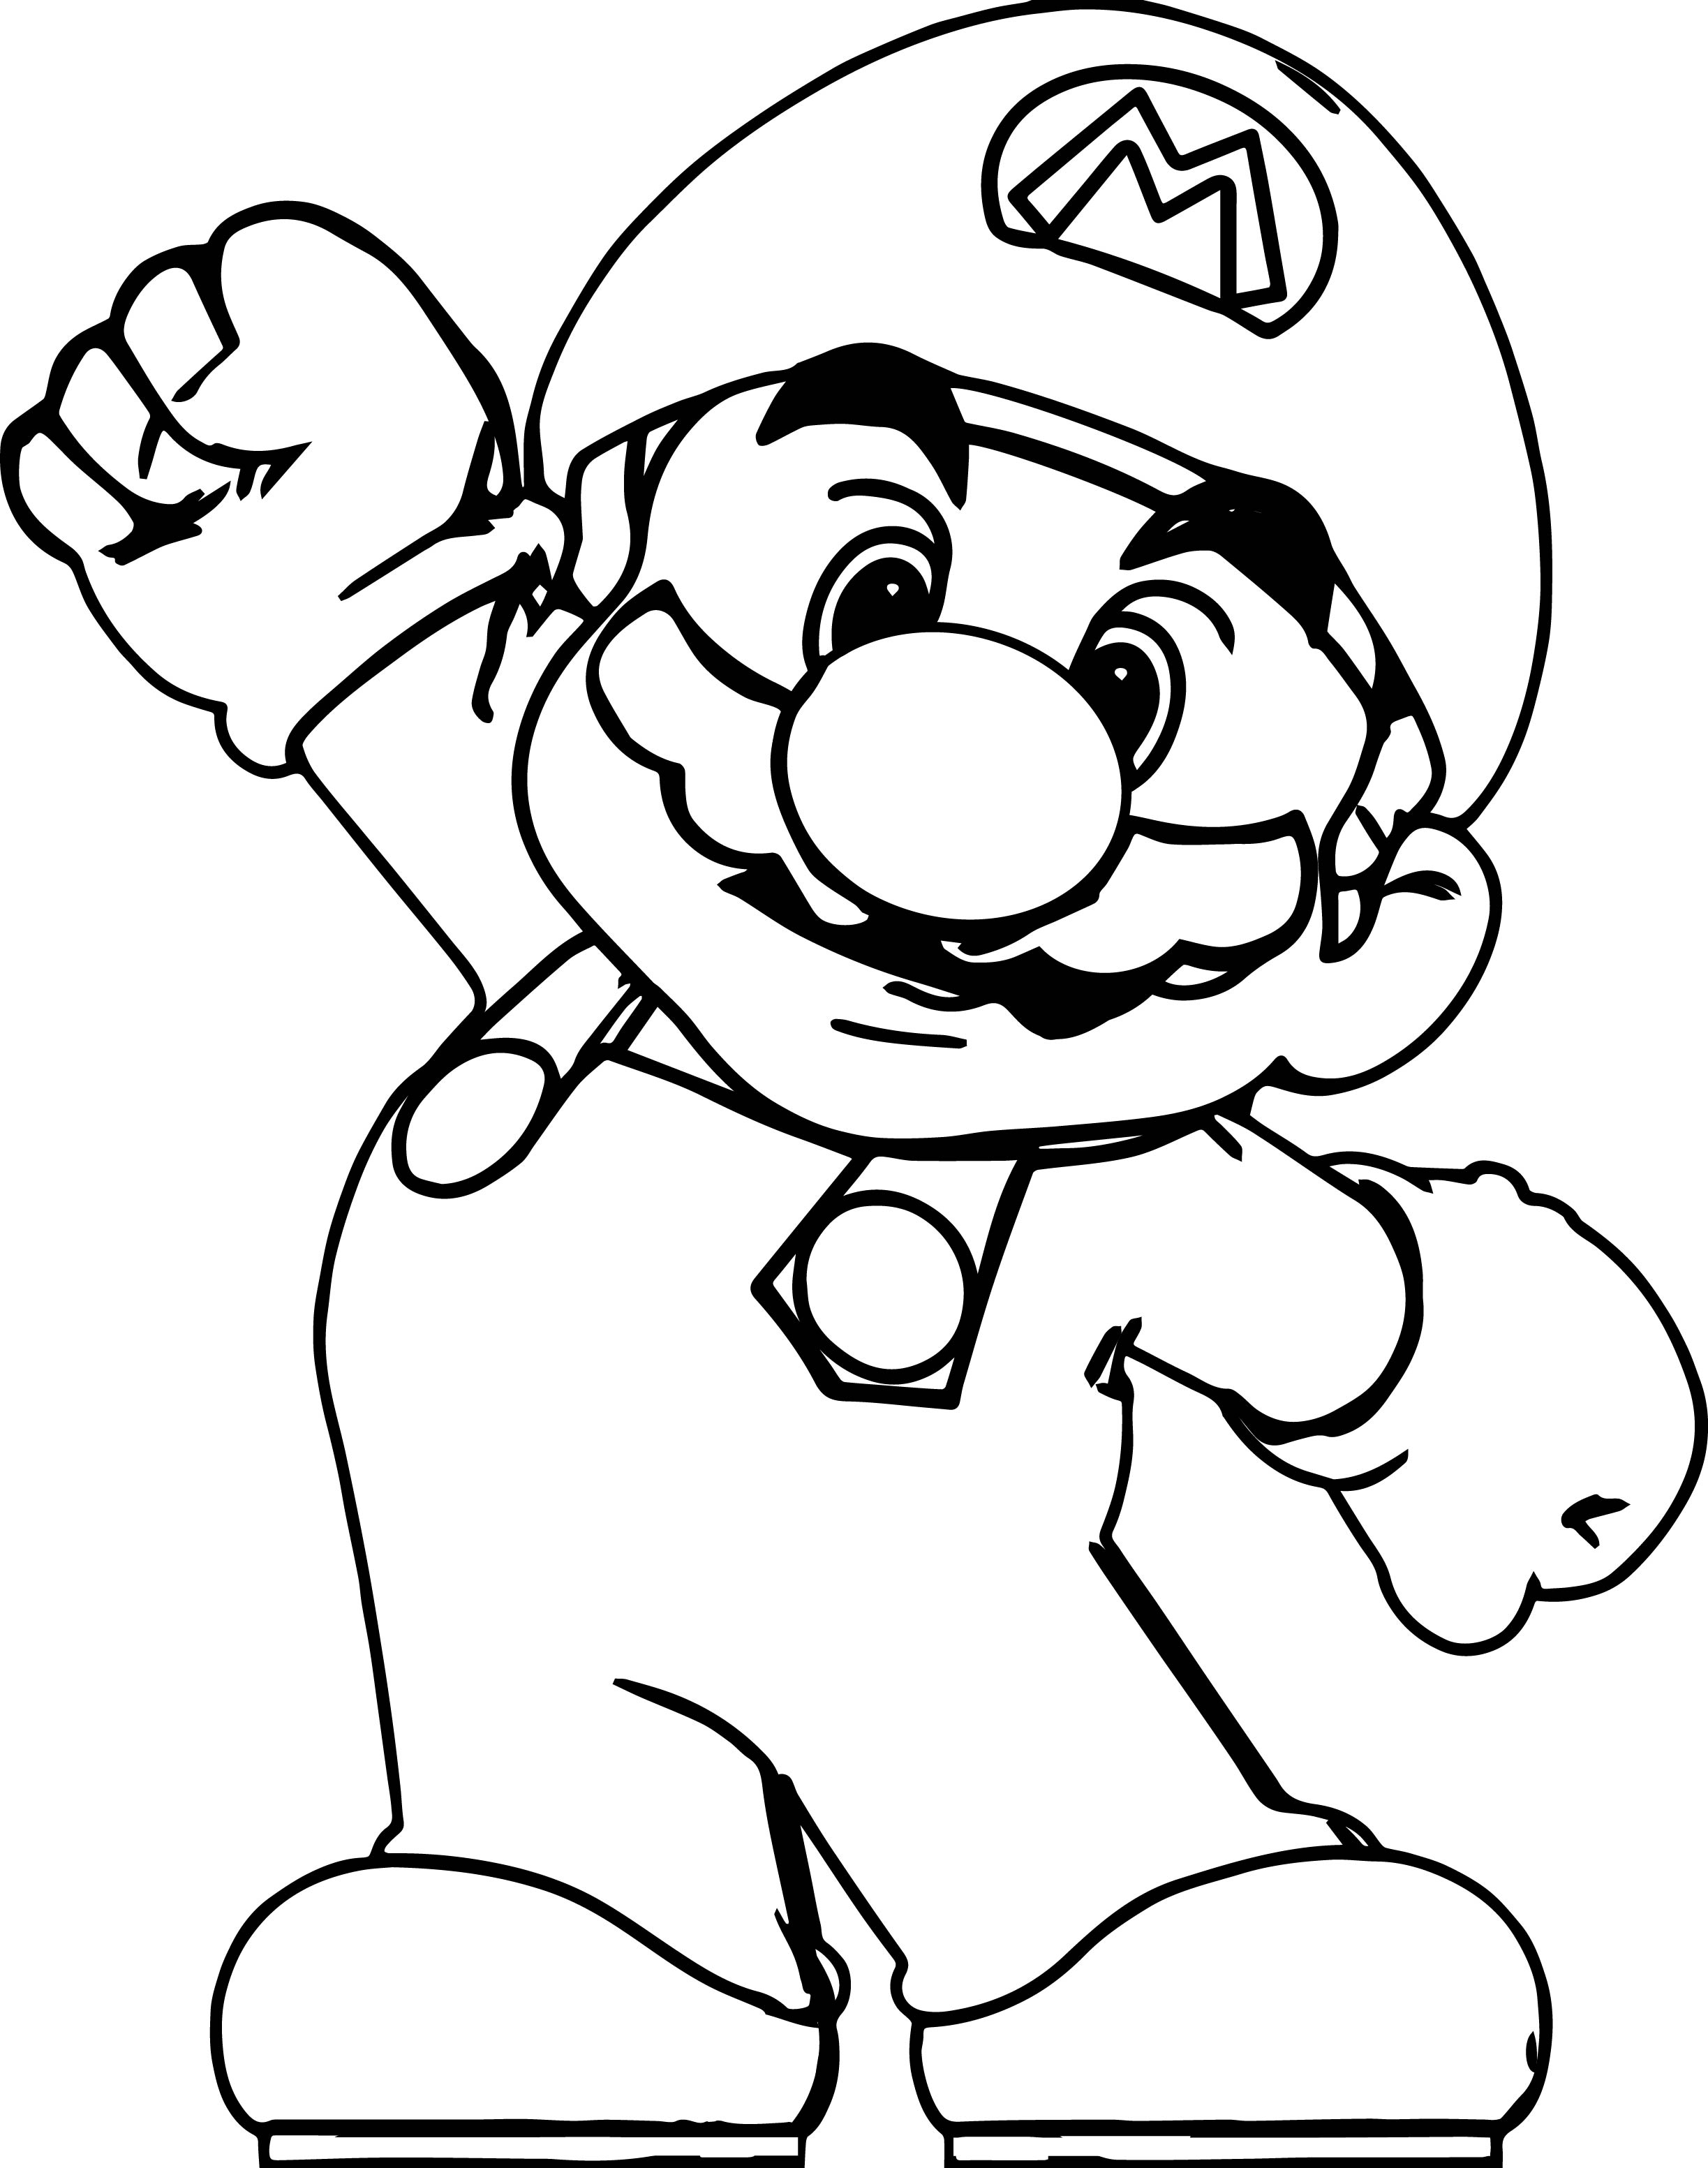 free mario coloring pages - paper mario